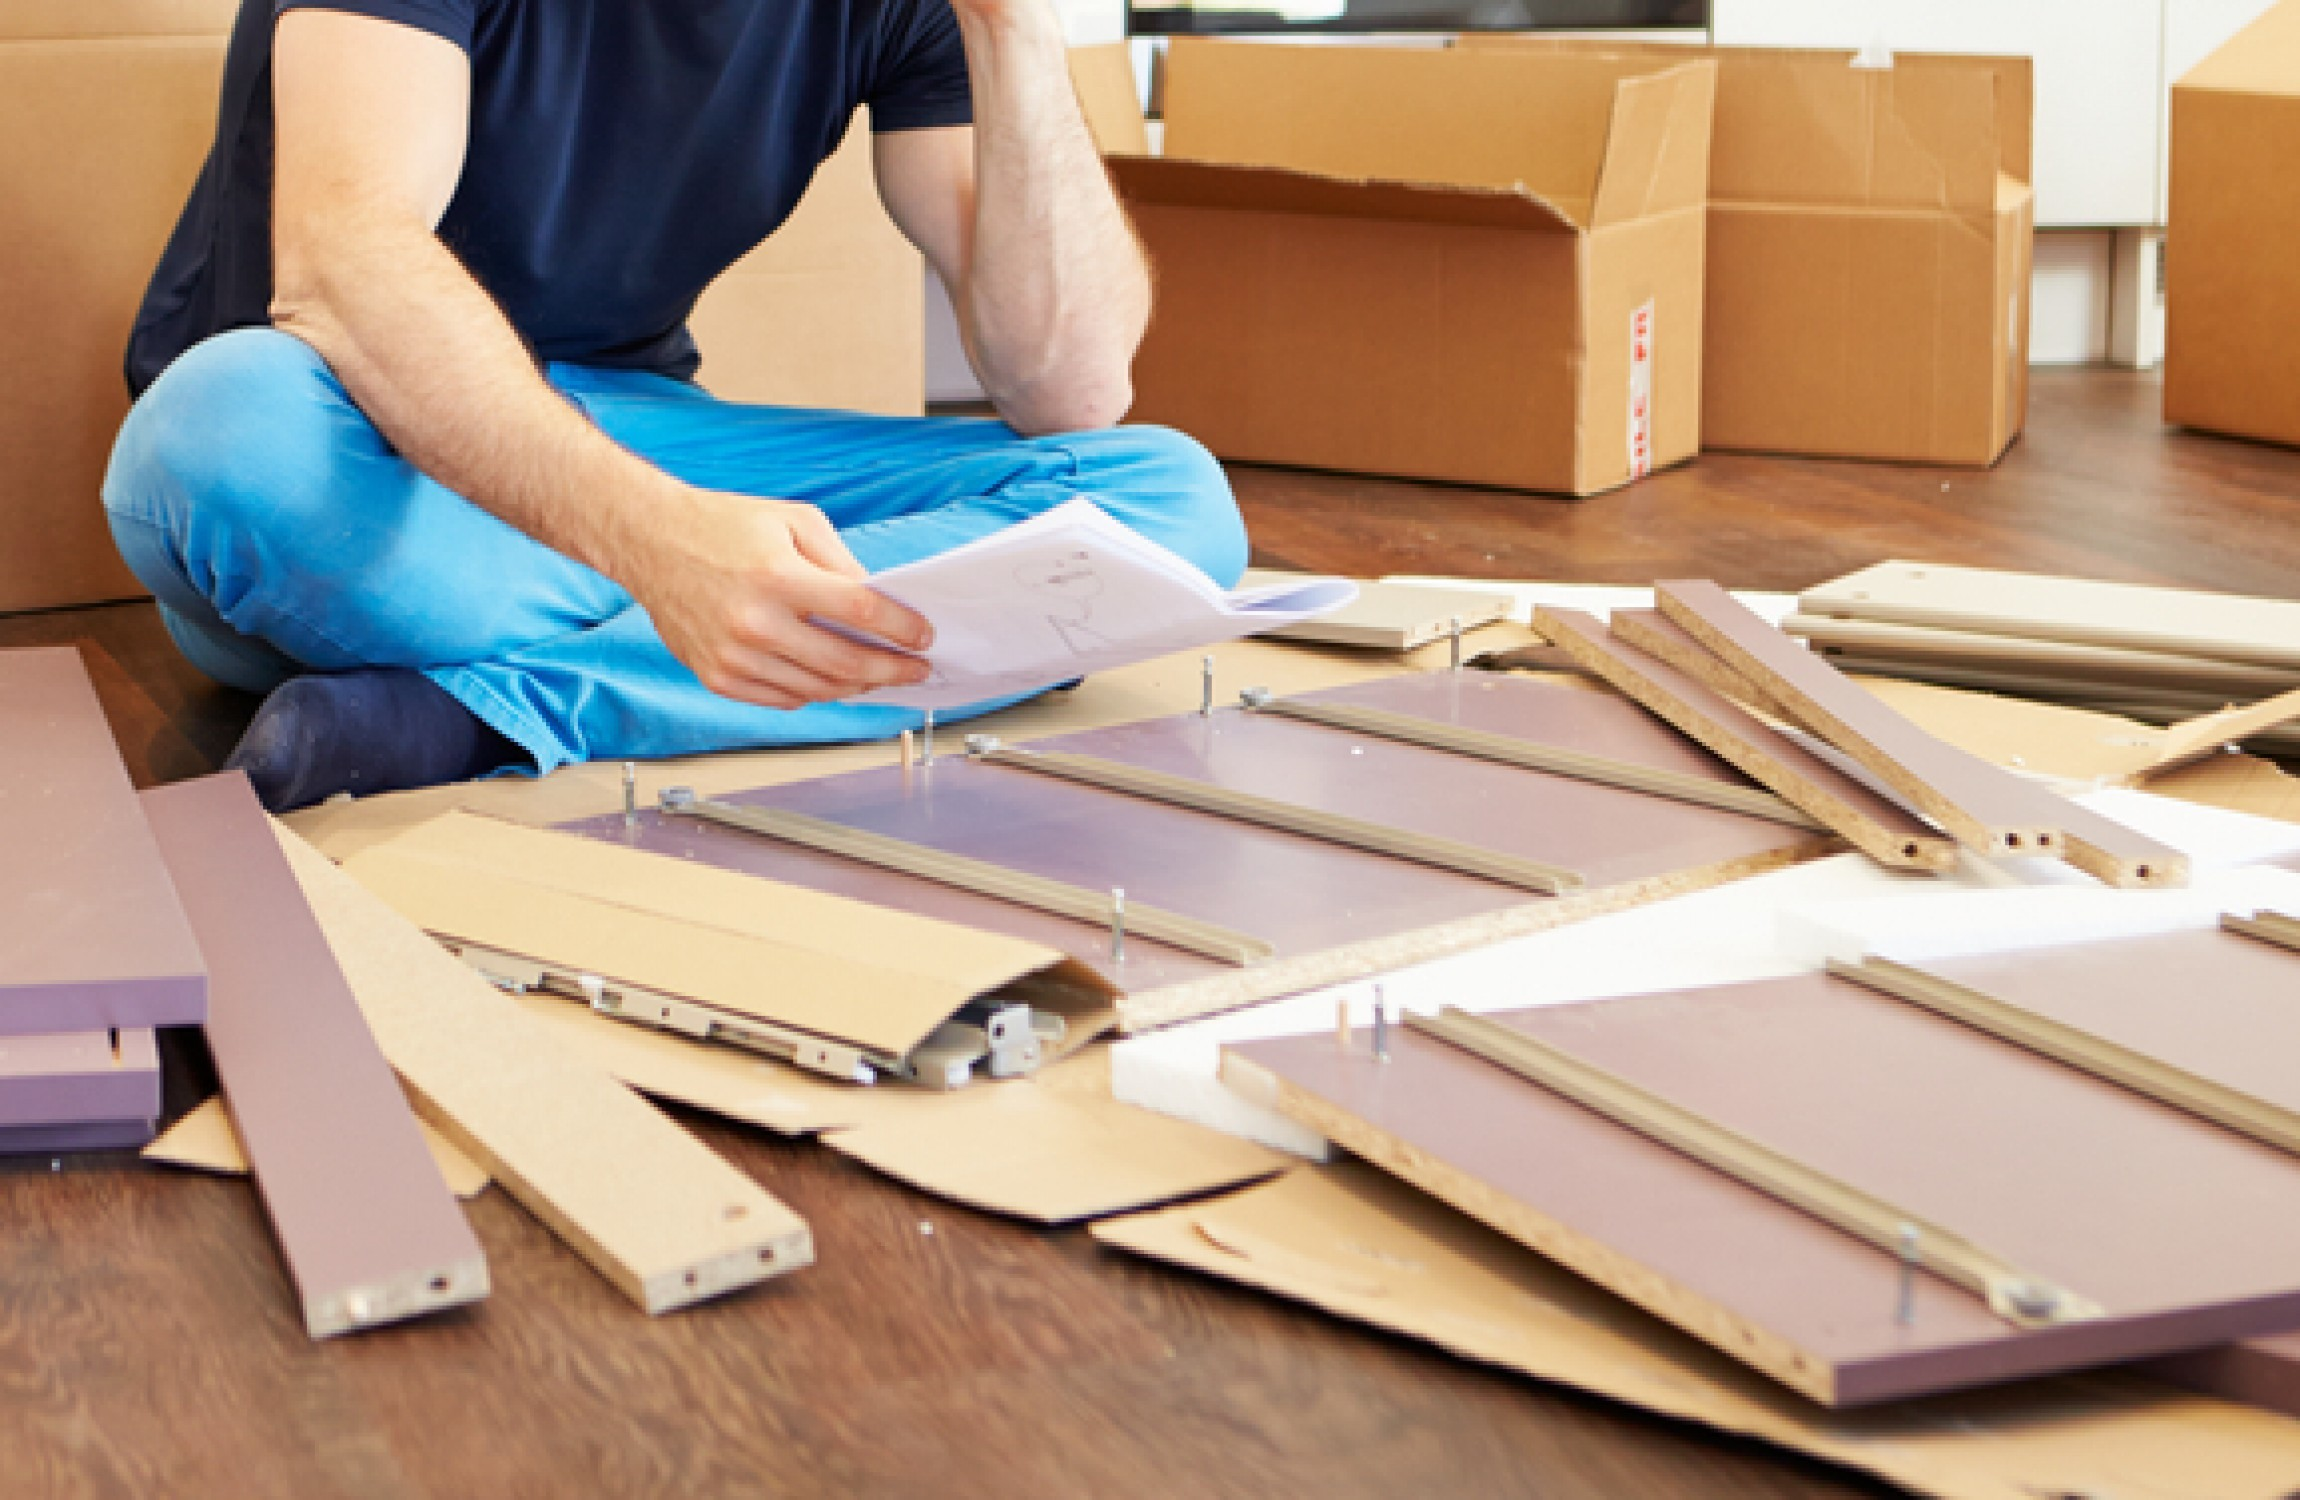 flat pack furniture. Flat-pack Furniture. The Cleaning App Is Also Branching Out Into Electrical And Painting Services. Flat Pack Furniture